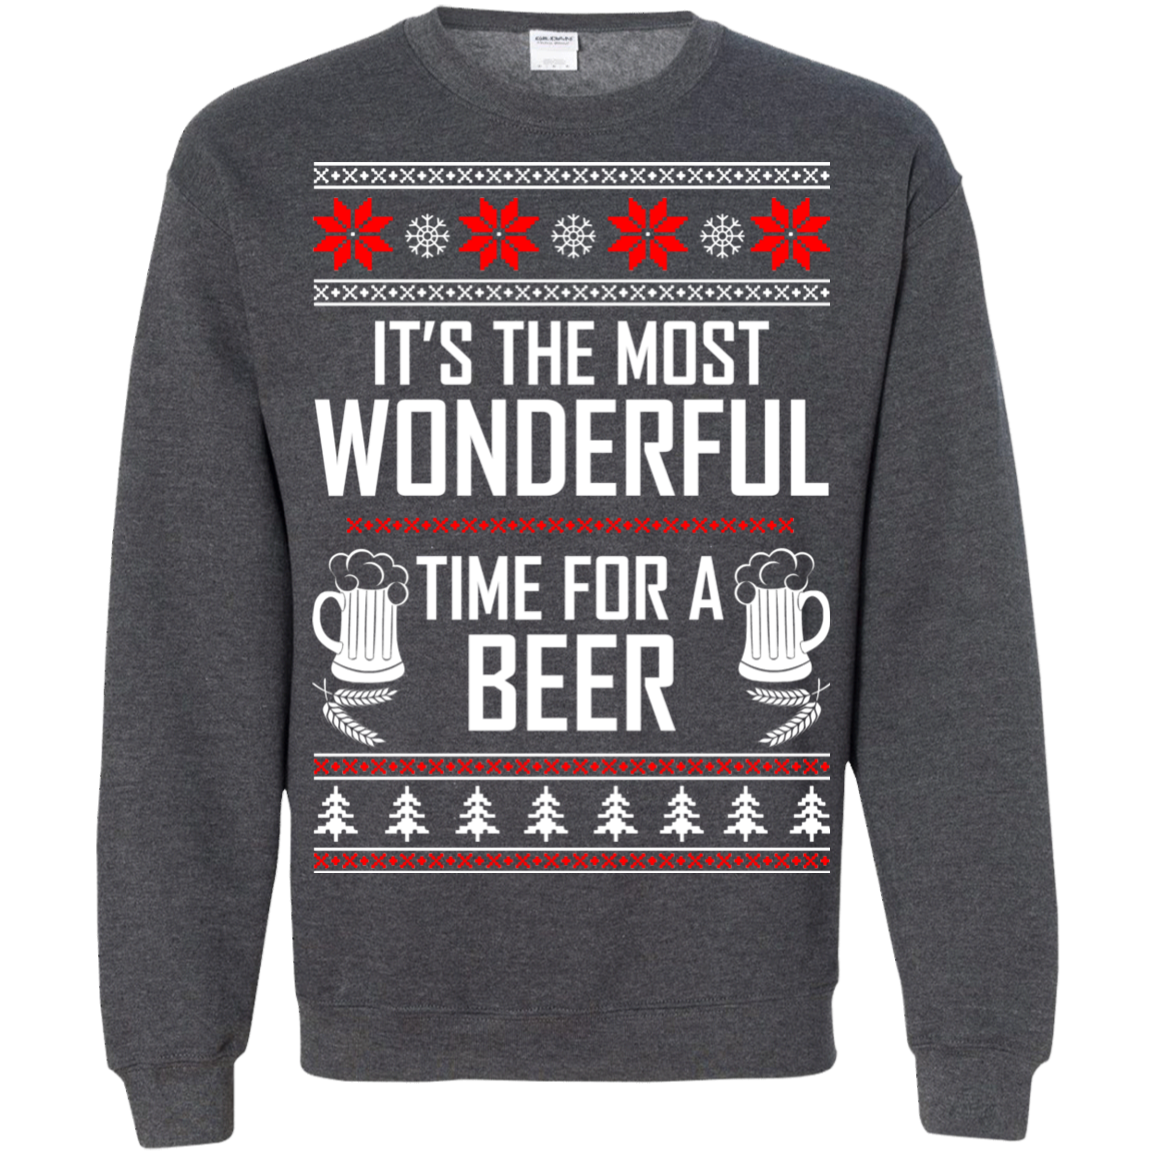 Beer Christmas Sweater.It S The Most Wonderful Time For A Beer Christmas Sweater